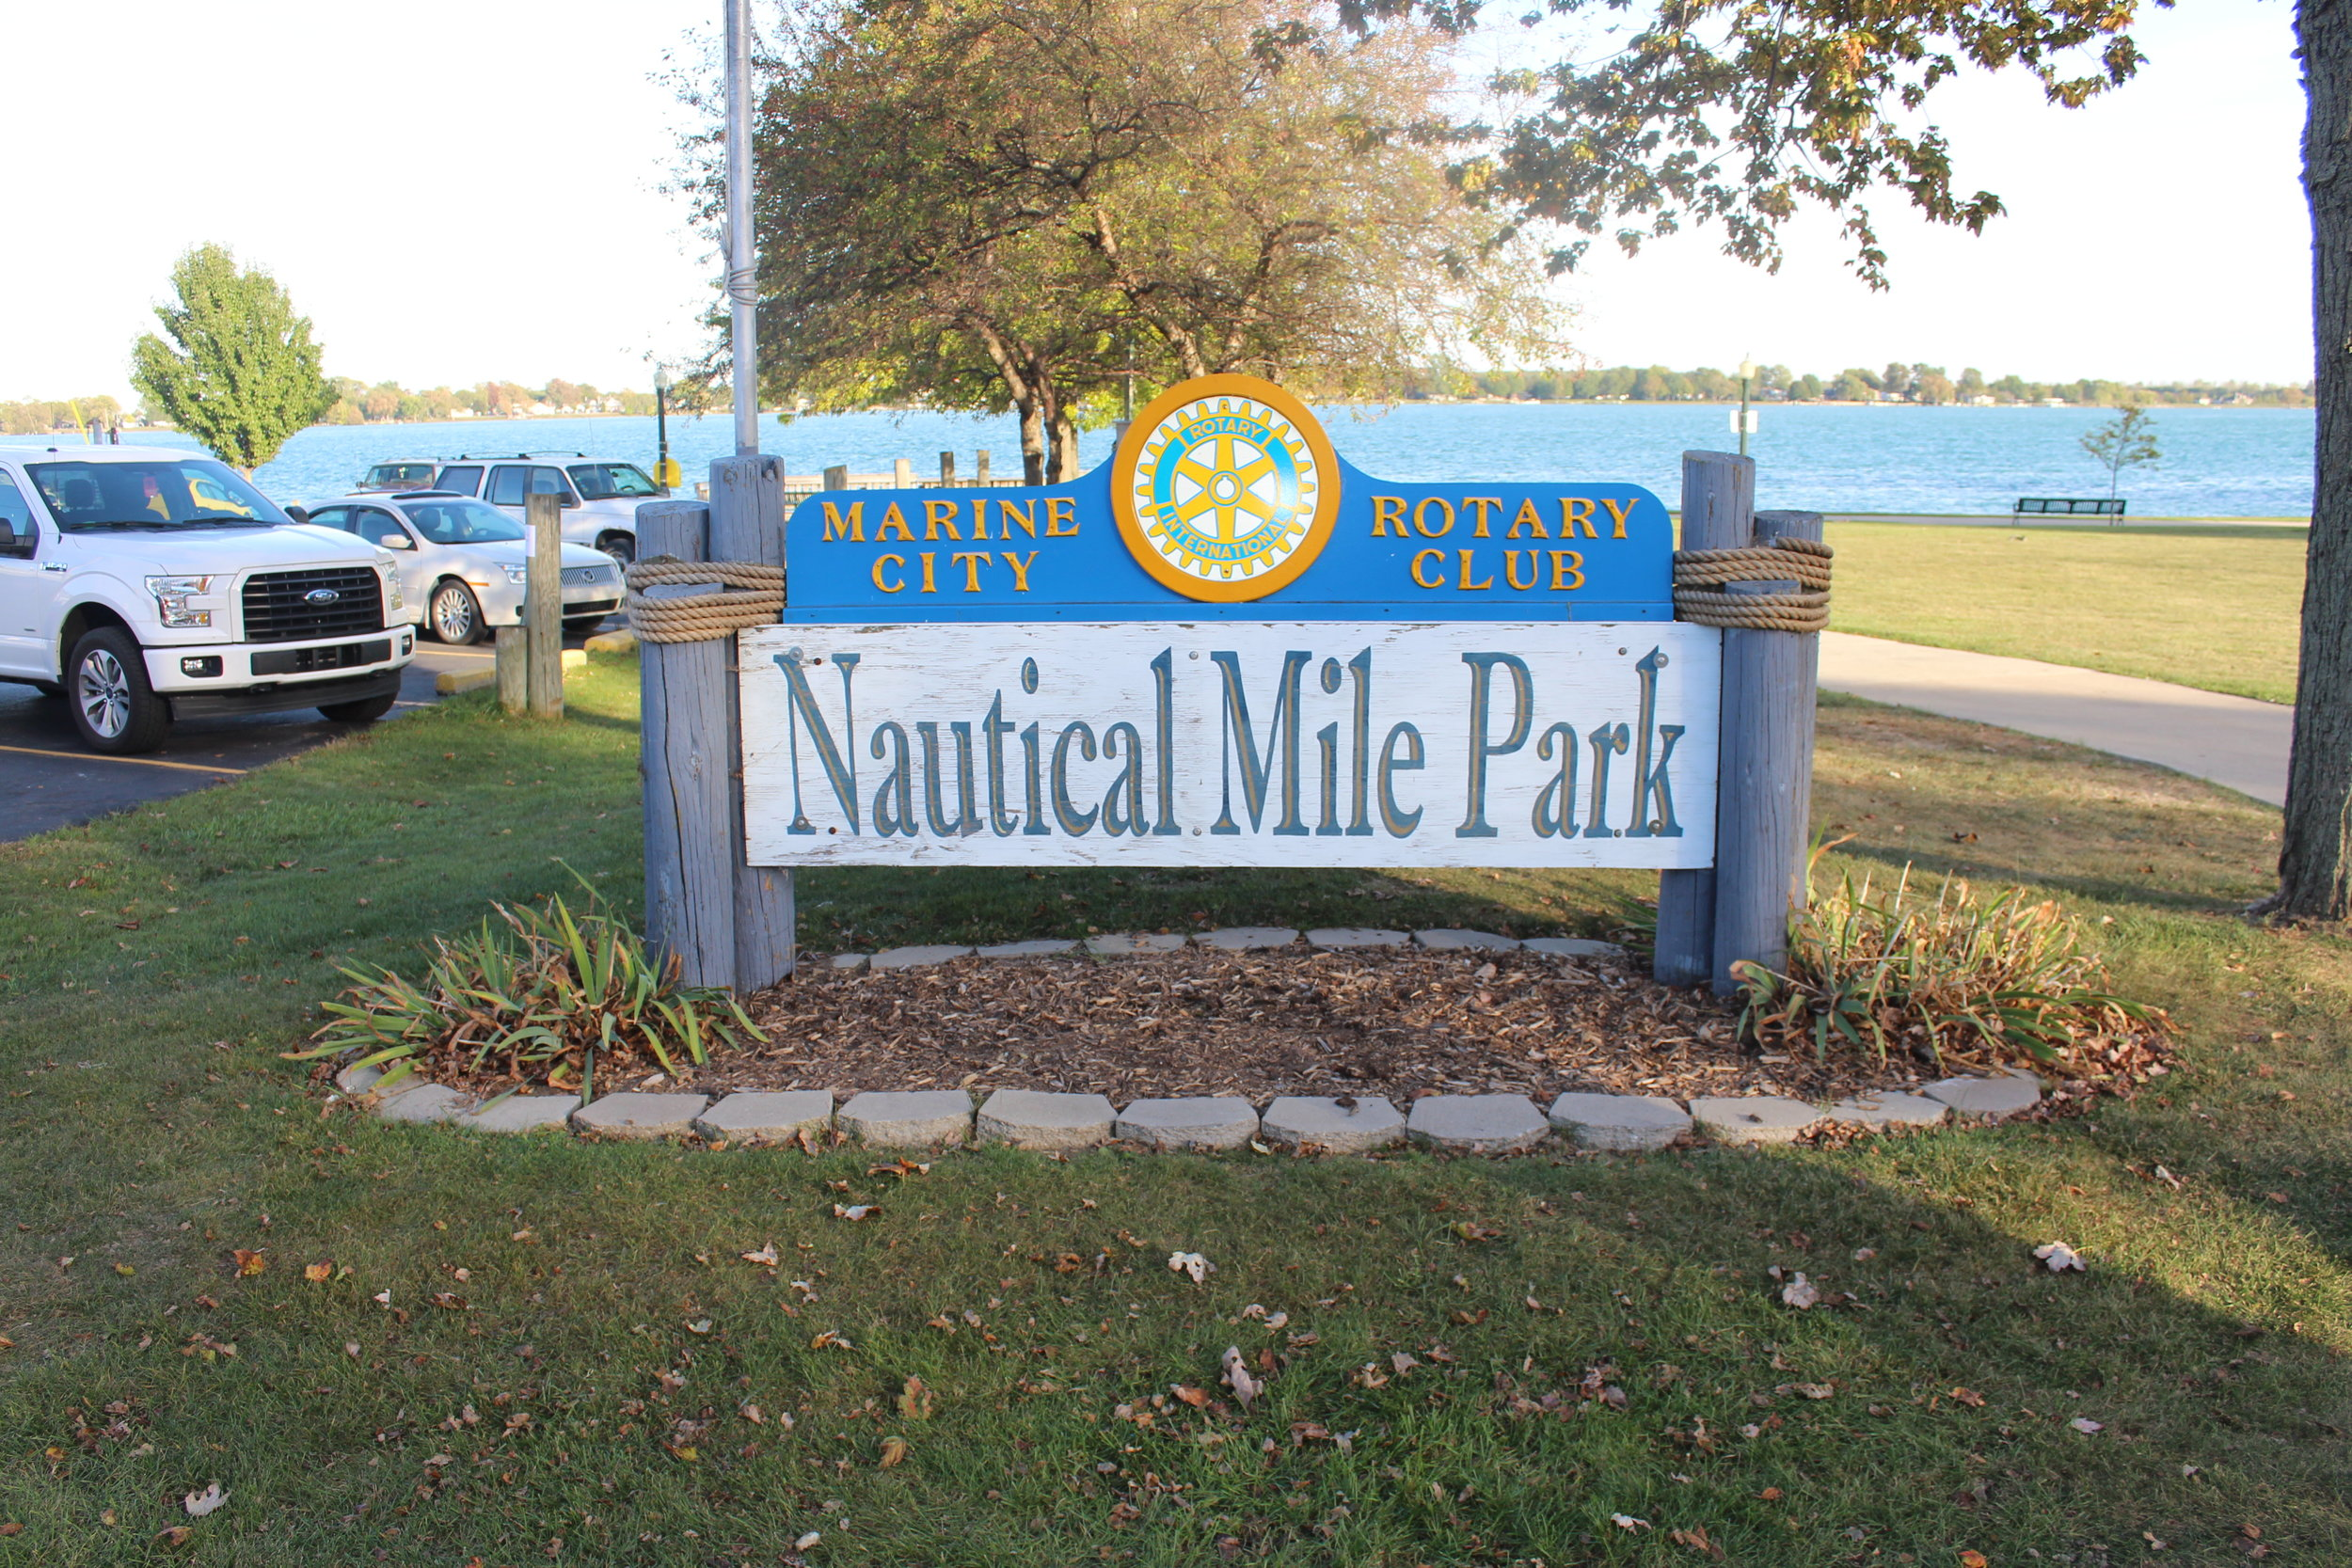 Nautical Mile Park